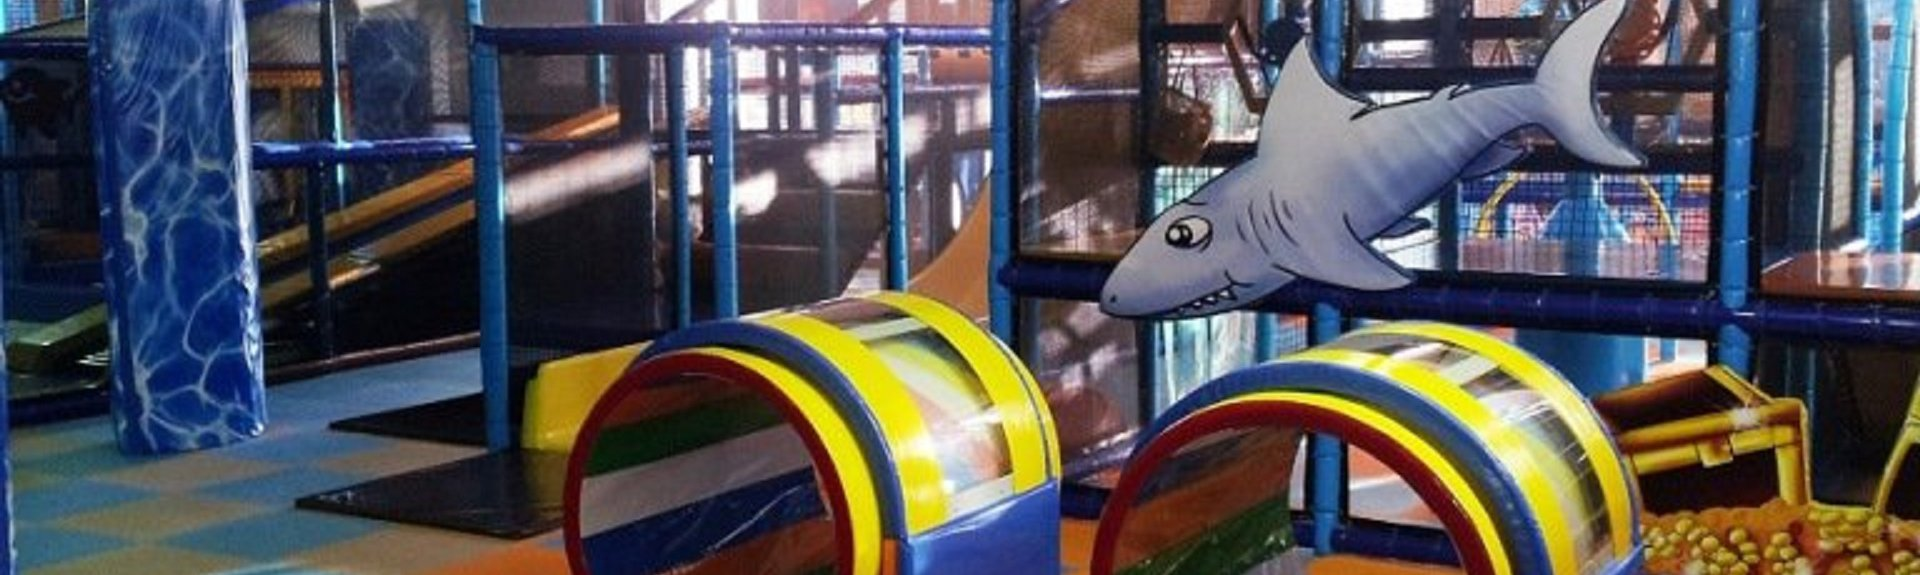 Blasters | Cape Town | Kids Indoor Play Venue | Things to do With Kids